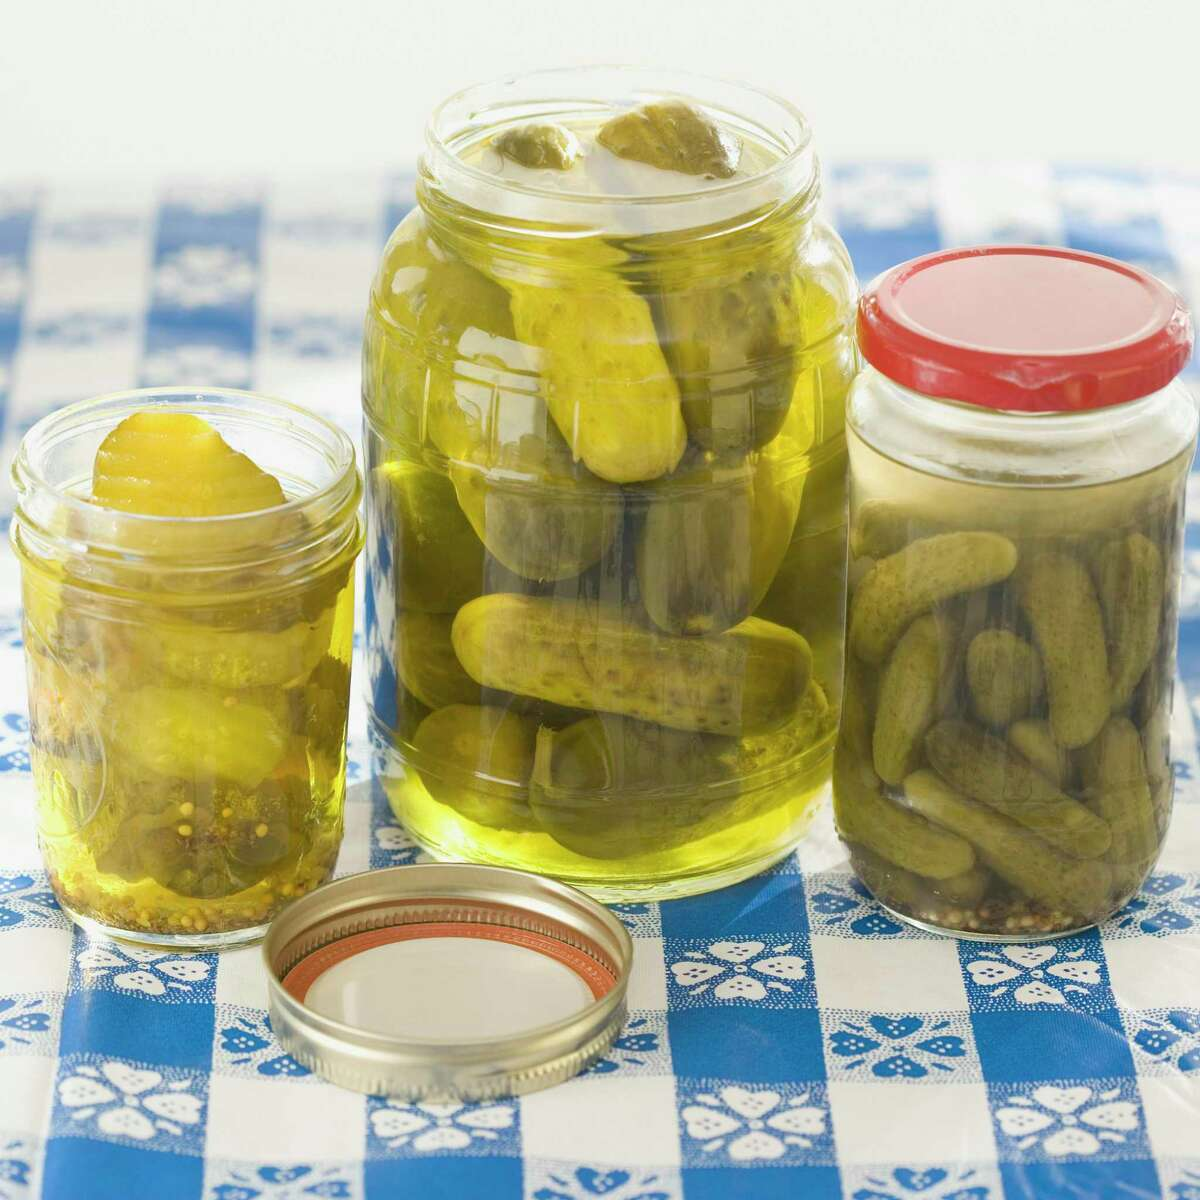 Old pickle juice can be reused to make a fresh batch of pickles or to brine meat.